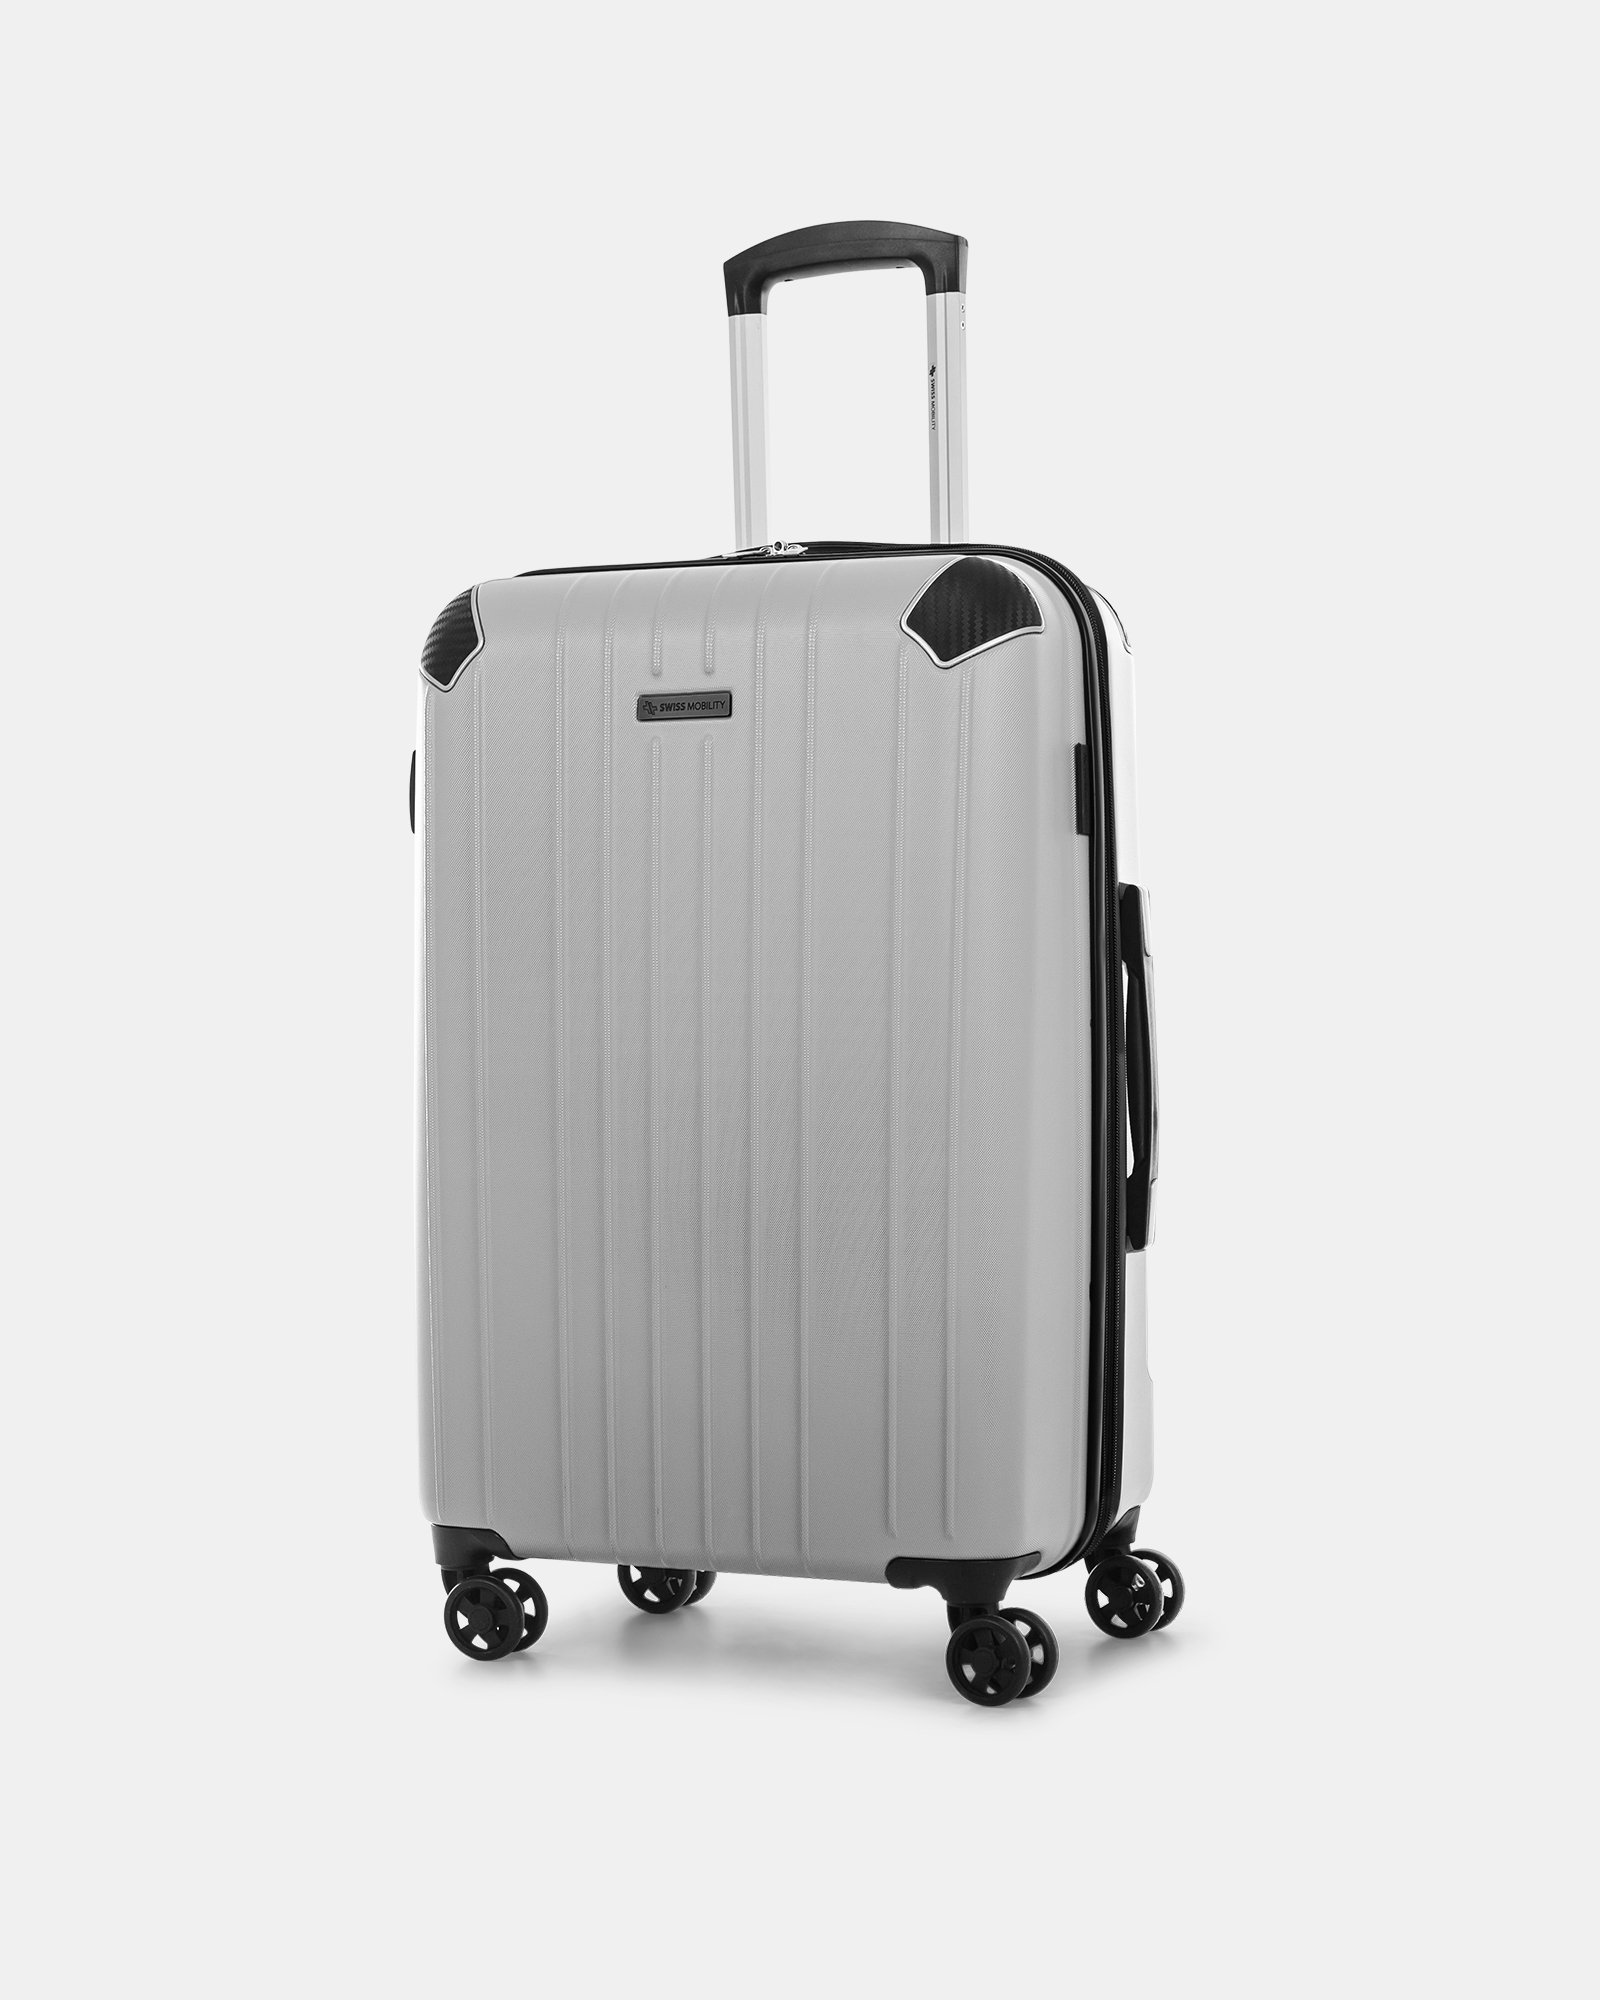 "PVG - 26"" LIGHTWEIGHT HARDSIDE LUGGAGE - SILVER - Swiss Mobility - Zoom"